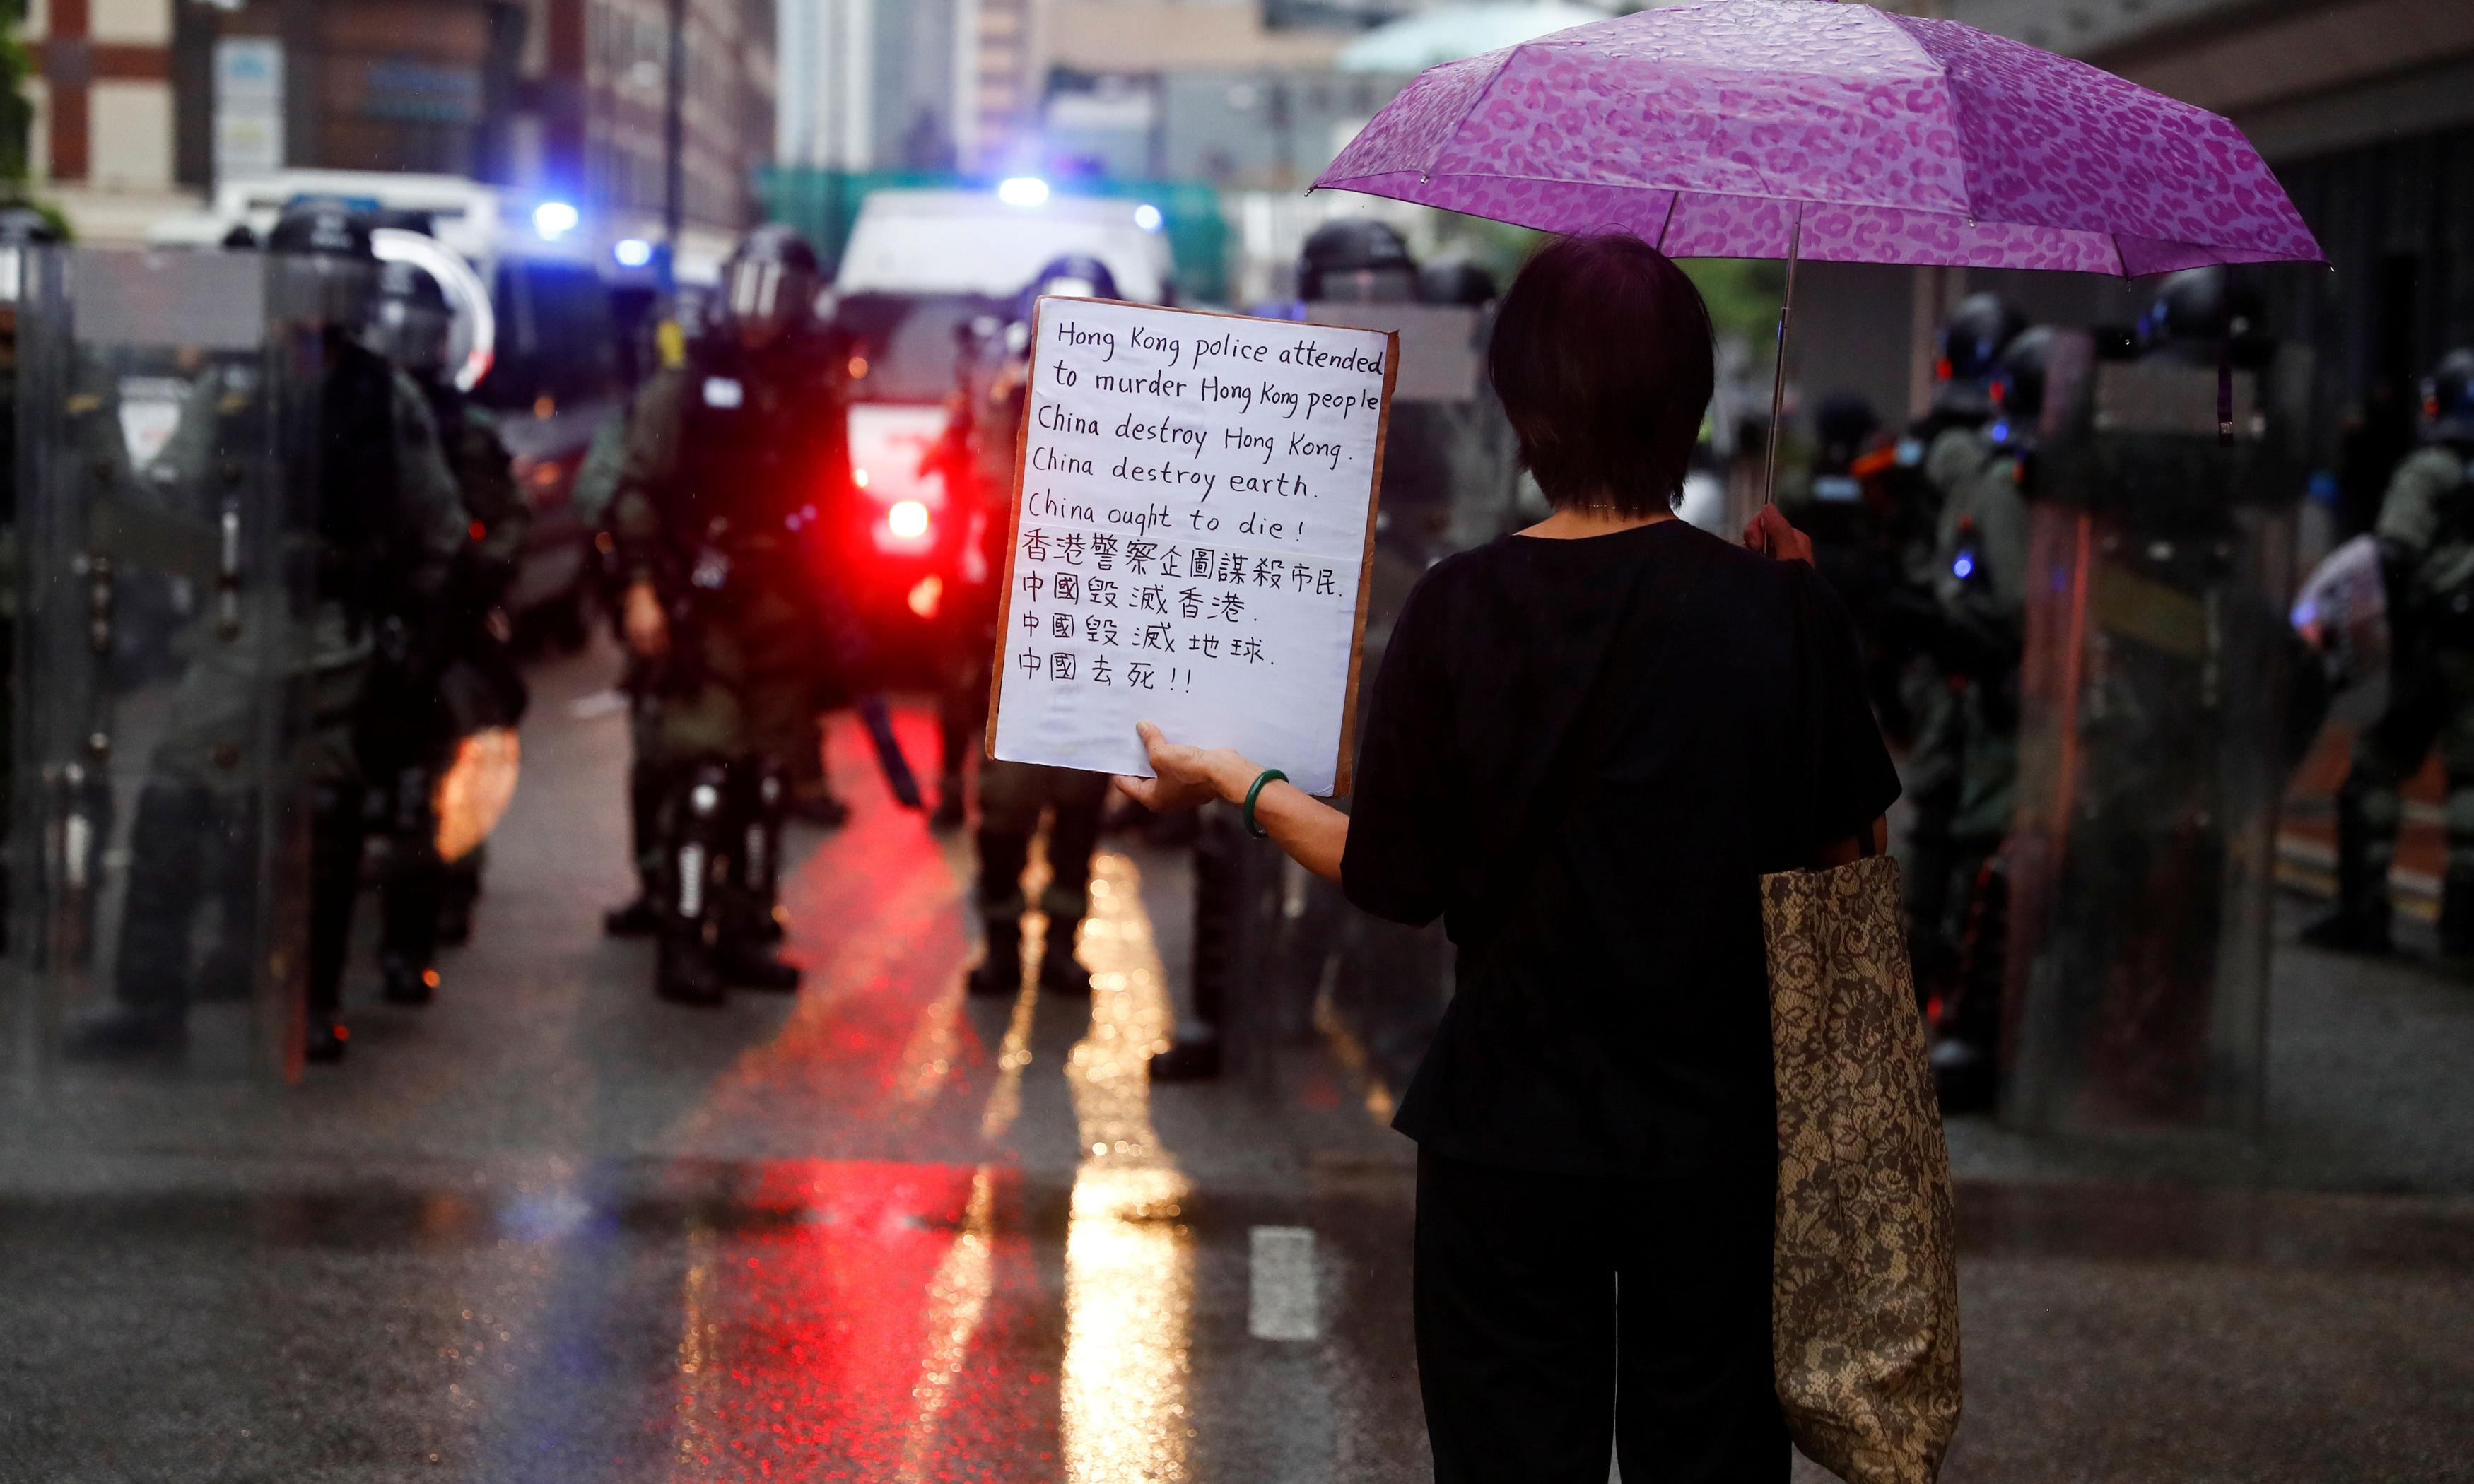 Hong Kong protests: police fire teargas at demonstrators in triad-linked district